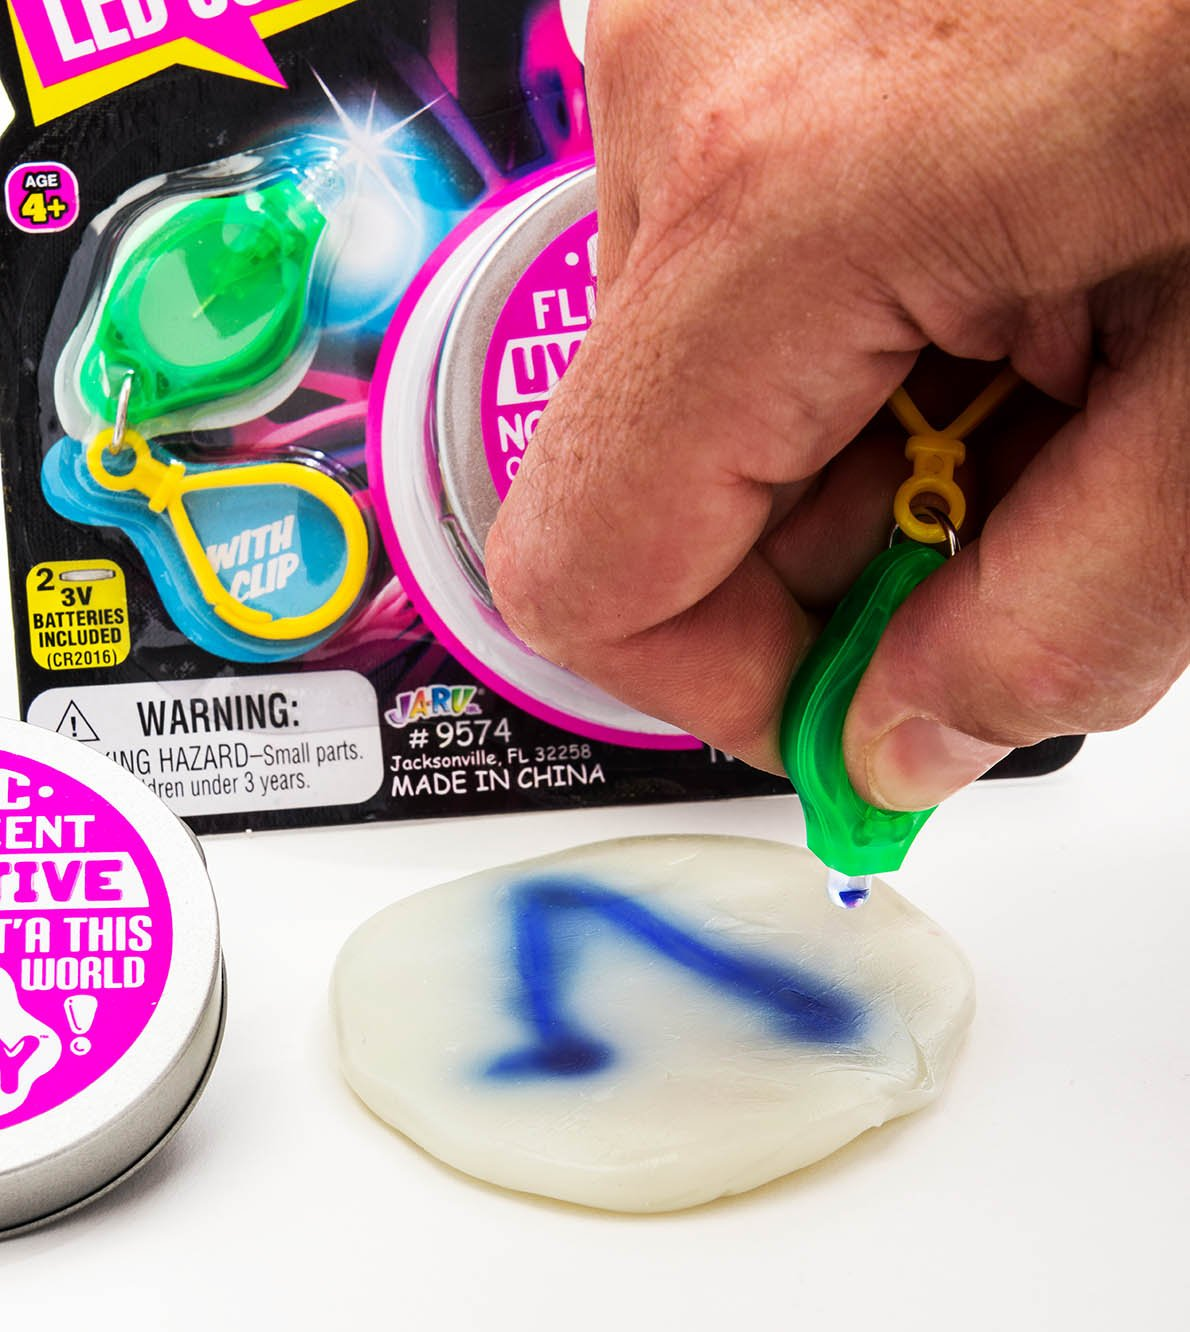 UV Led Lab Putty Scribbler & Bouncing (Pack of 12) by JA-RU | Reactive Sensitive Putty Painting with Light | Item #9574-12 by JaRu (Image #2)